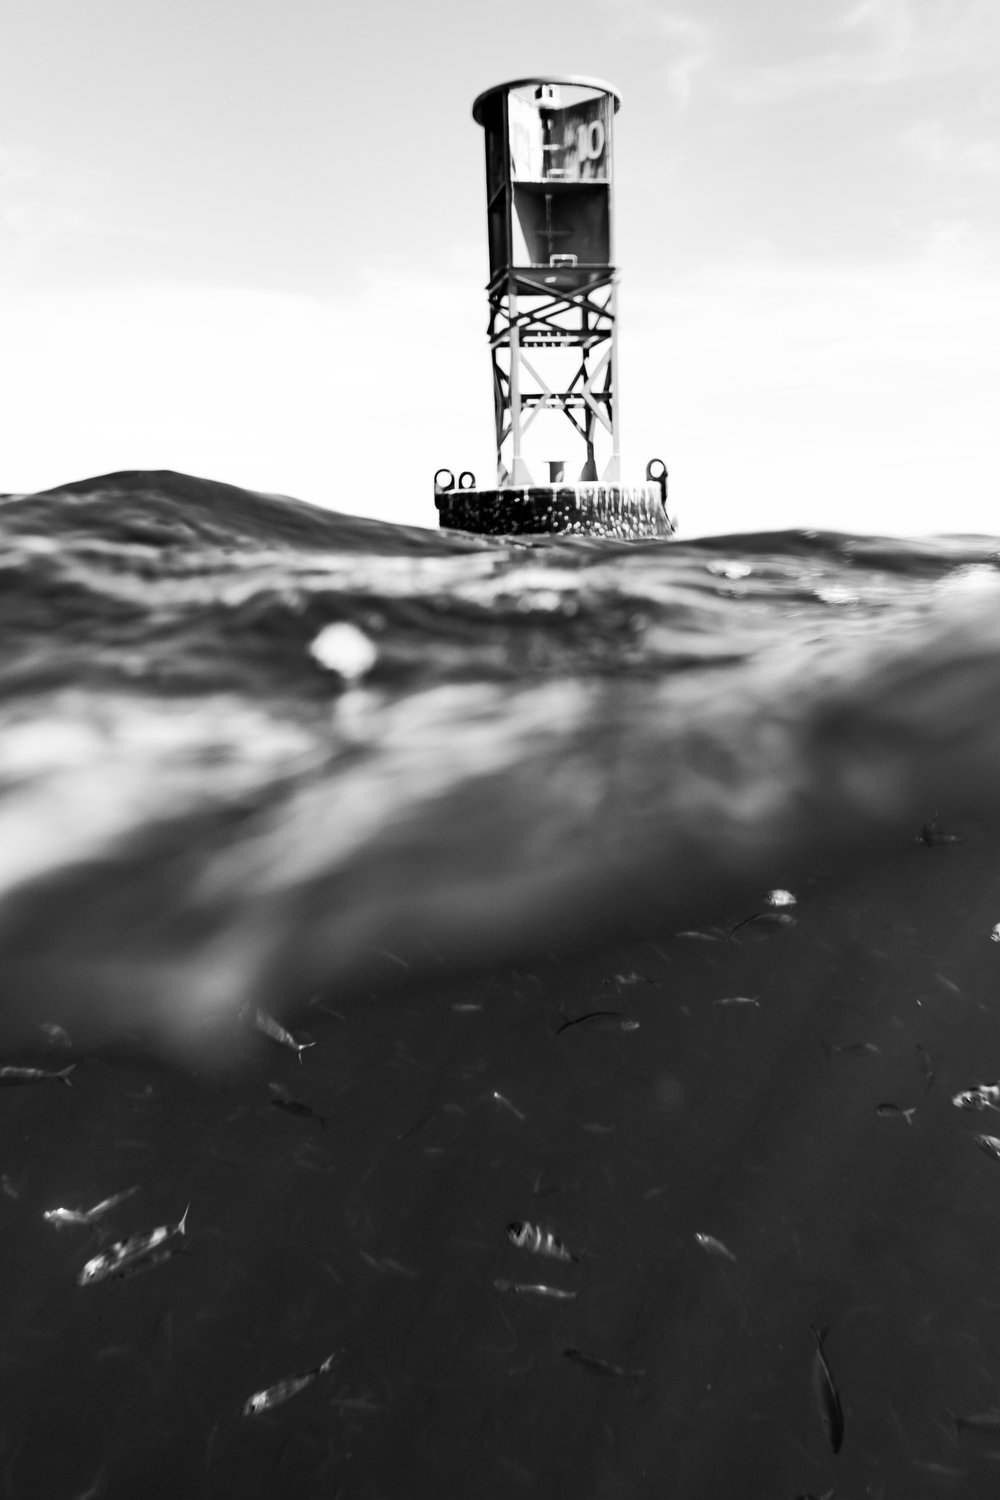 Bethel Buoy of the coast of Ft Pierce, Florida. Photograph by Nathaniel Harrington